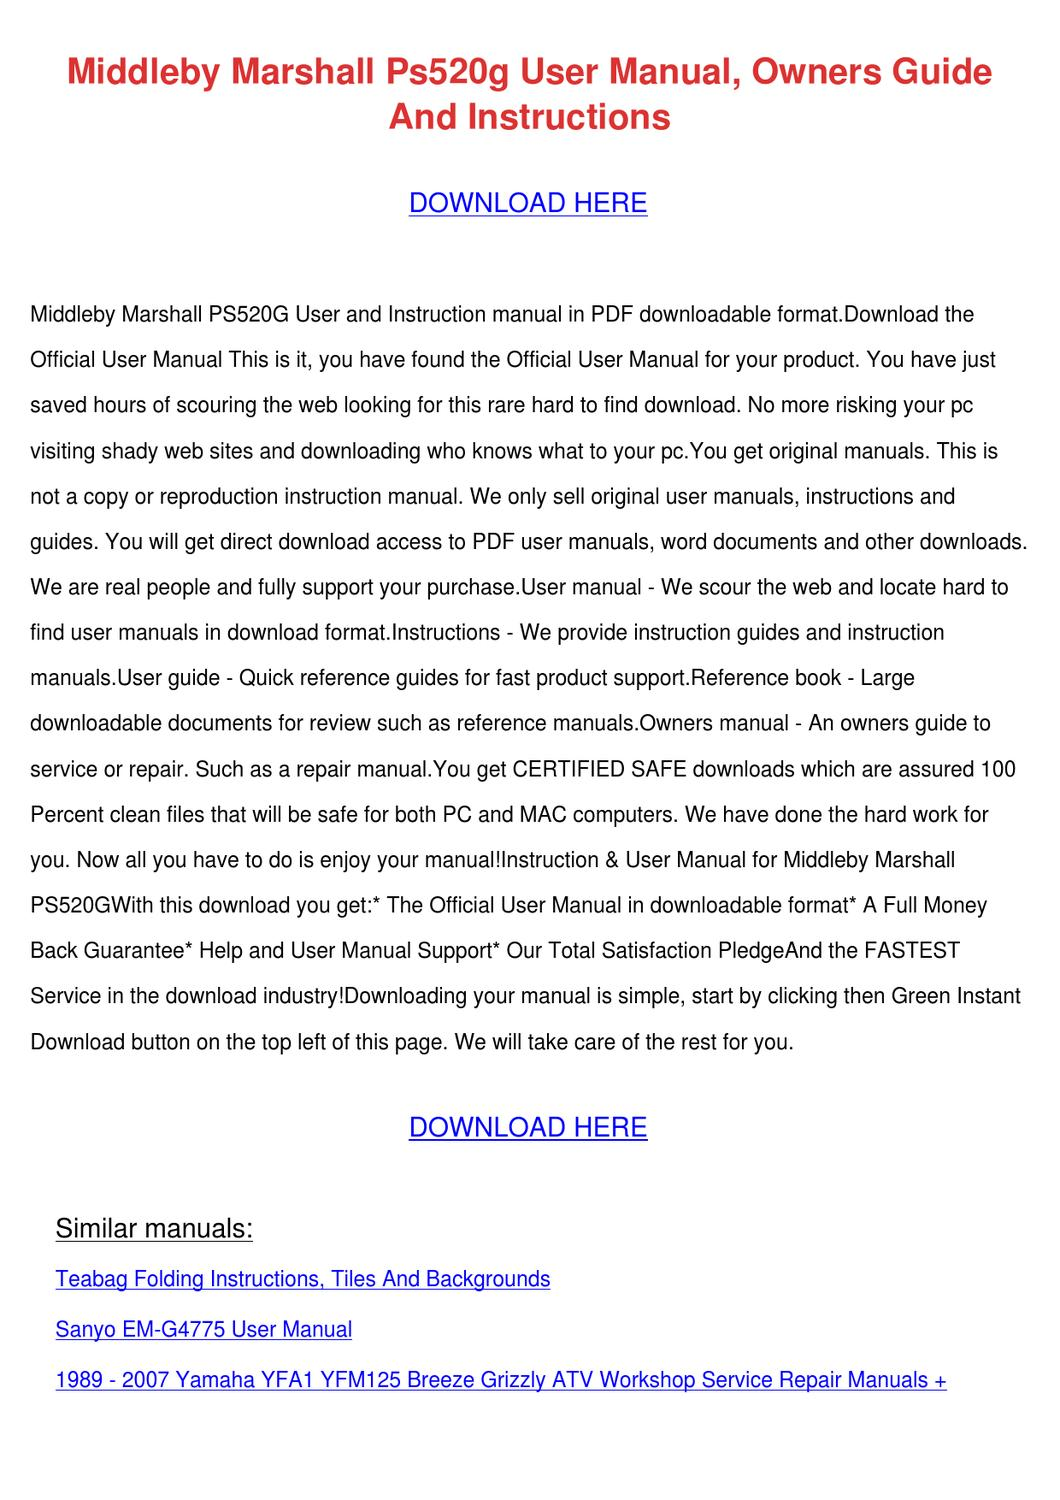 Middleby marshall Ps250 Manual